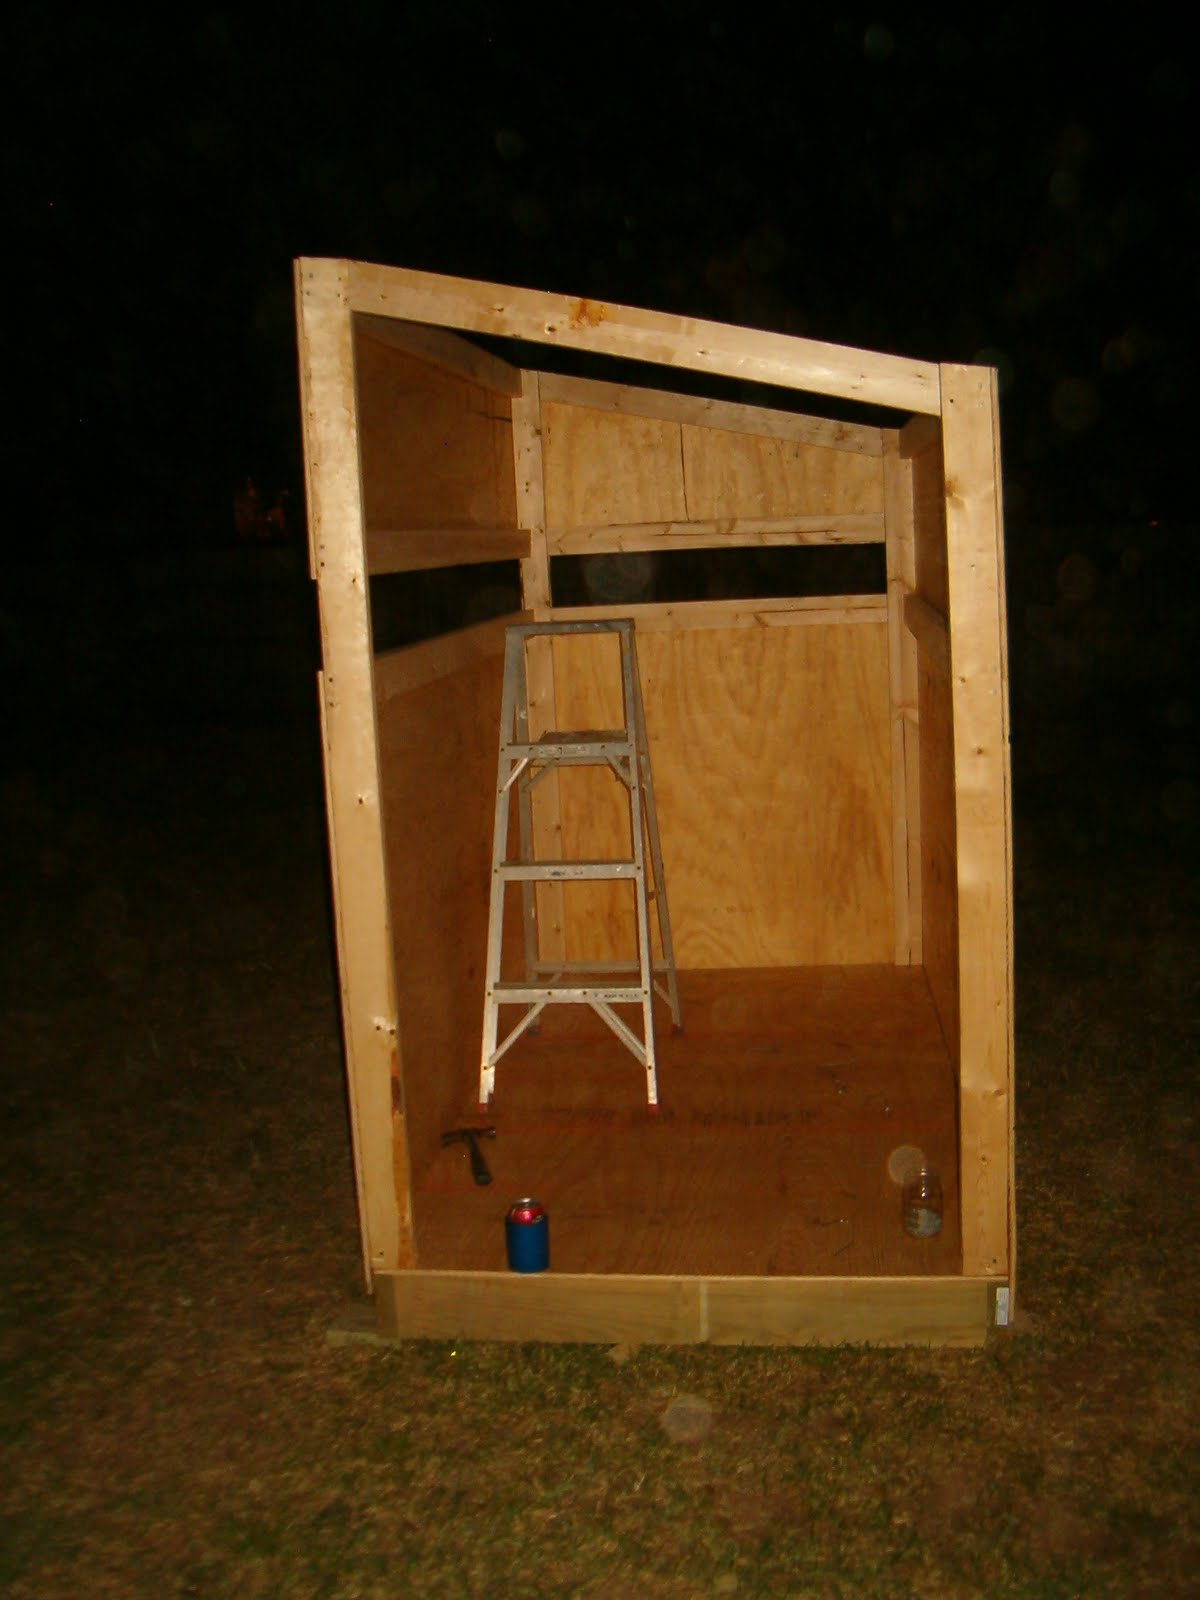 Dudleys Diary Here Are Some Photos Of The Deer Stand